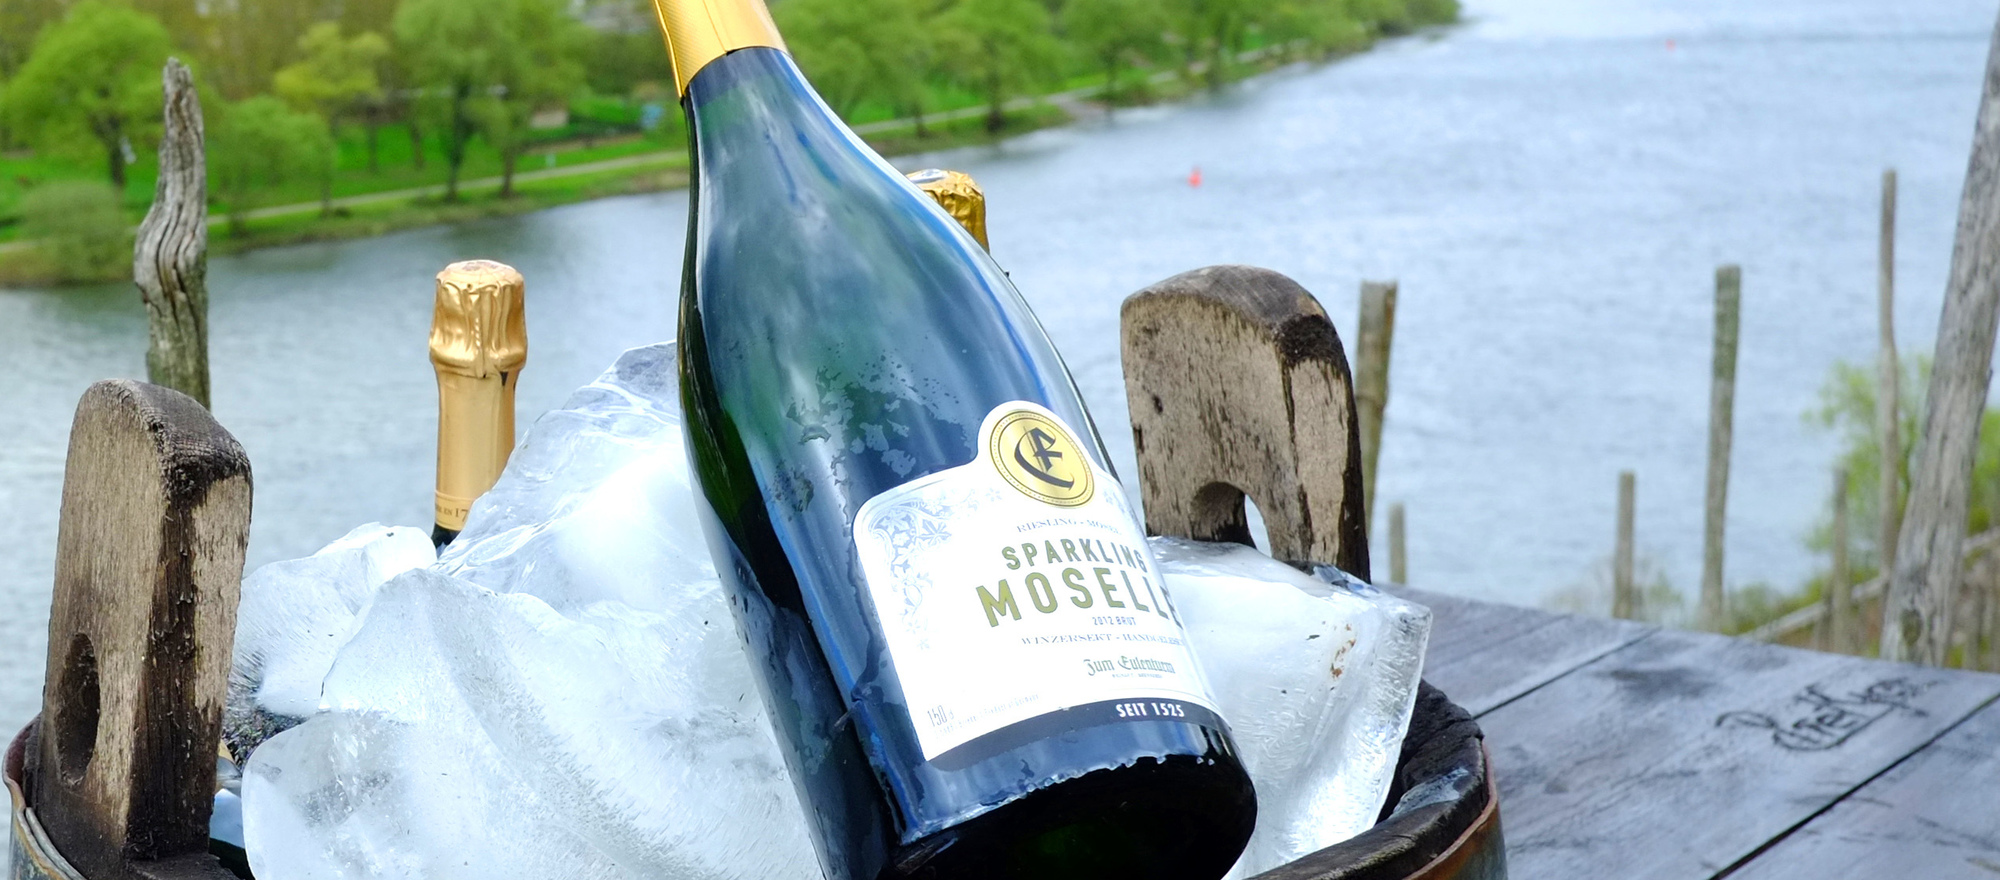 Sparkling Wine put on ice at the Ringhotel Boemers Moselland, 3-star-superior hotel in Alf/Mosel